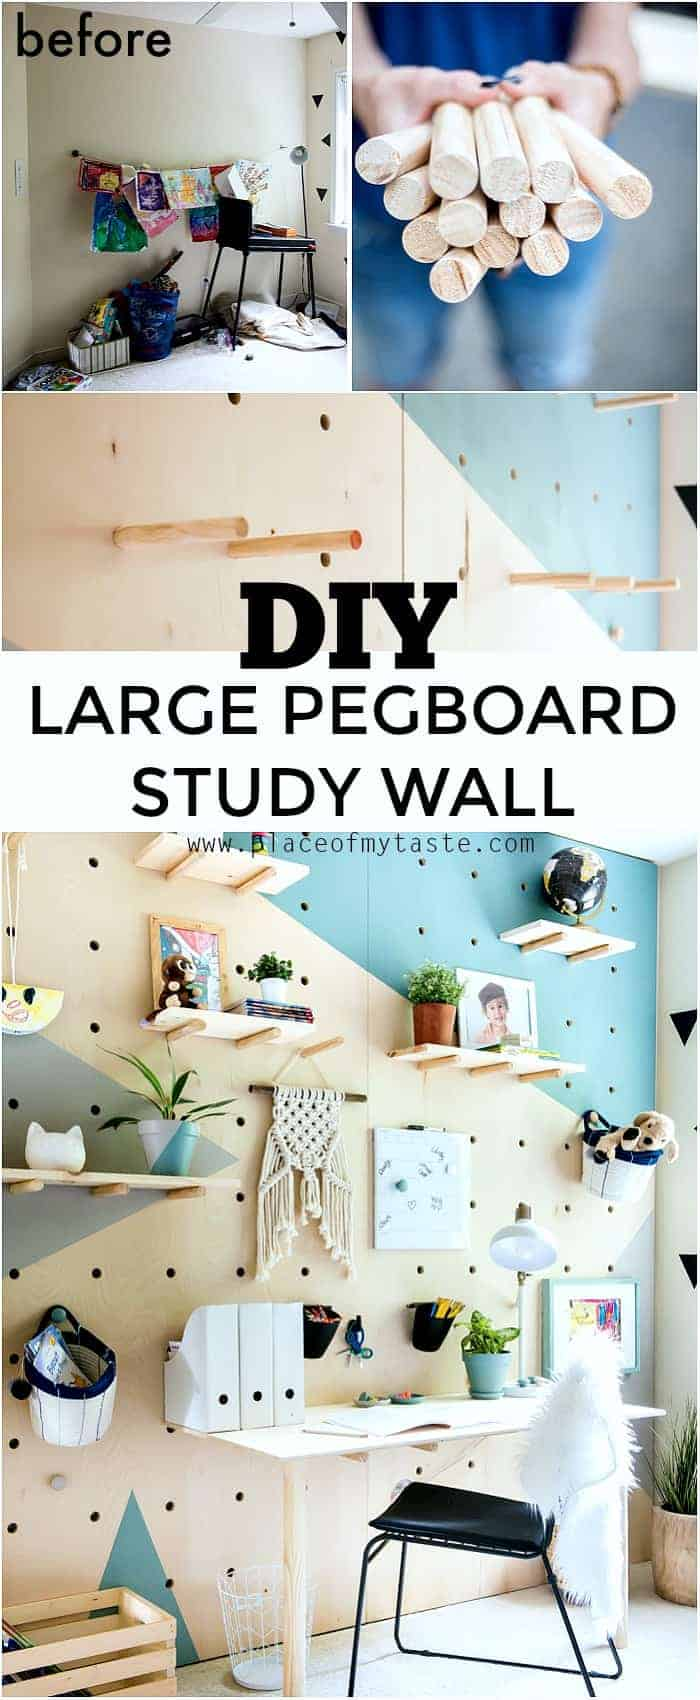 Pinterest pin for DIY large pegboard study wall